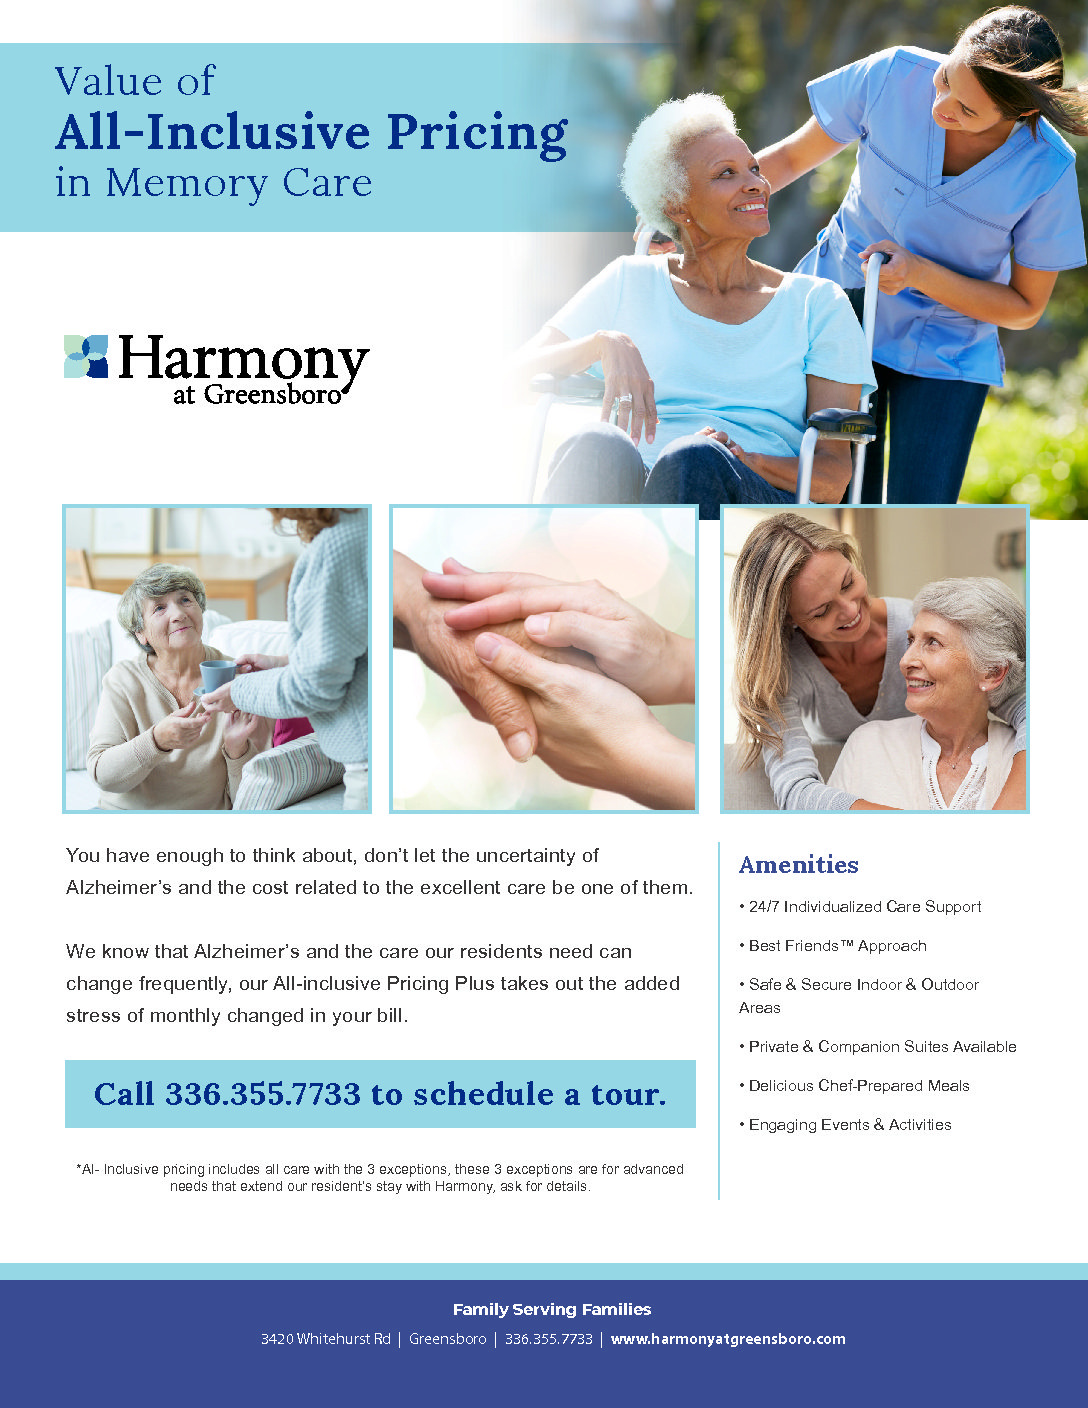 All Inclusive Pricing for Memory CARE!